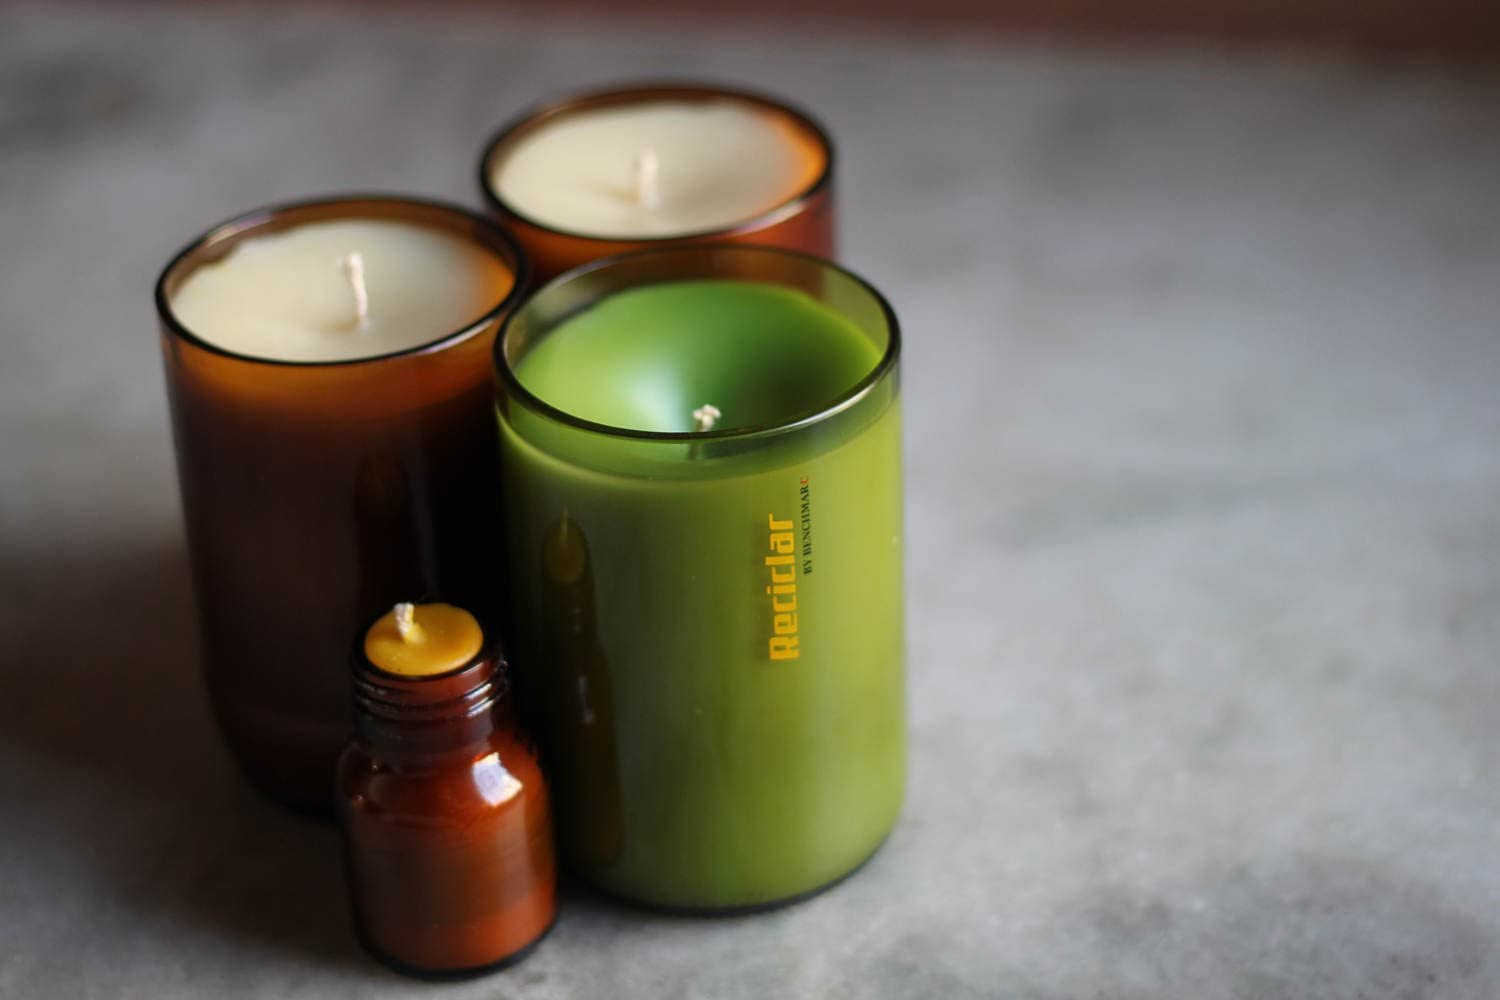 100 /% Soy Wax Candles-Recycled Wine Bottle Tray Wine Candle Eco-Friendly Aromatherapy Candle